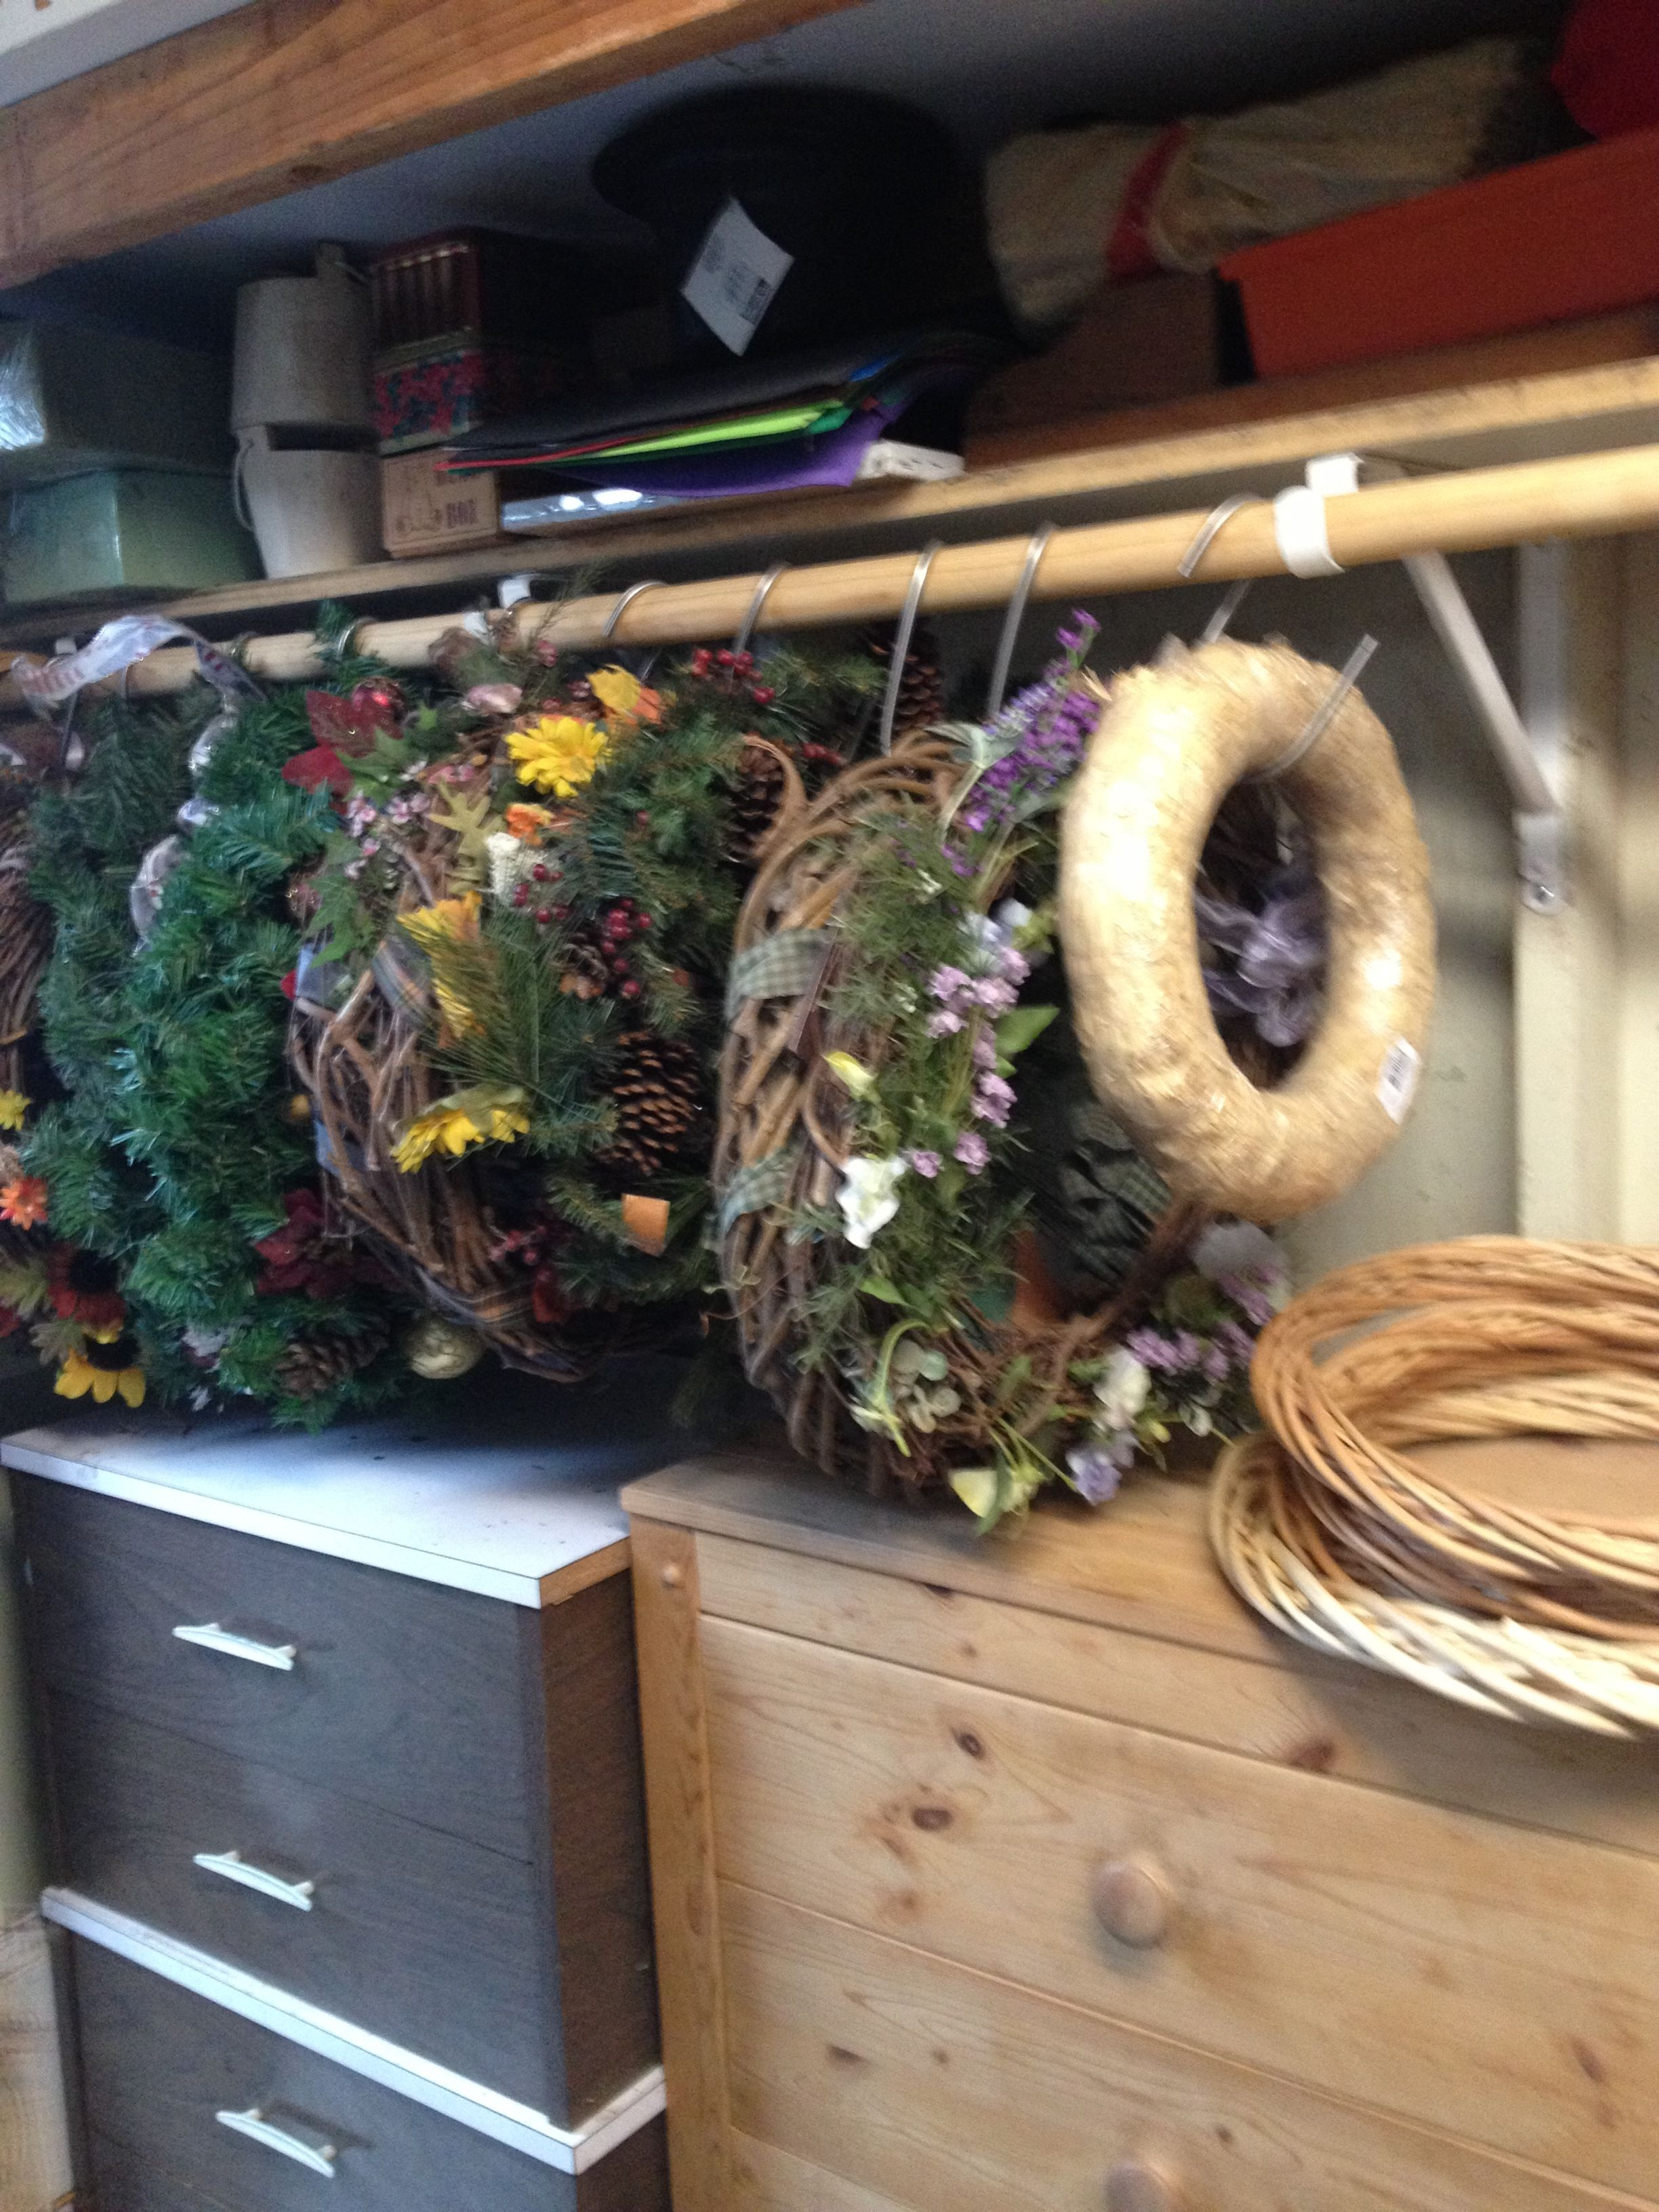 Storage for wreaths going to use a clothesline in storage for Attic storage bow